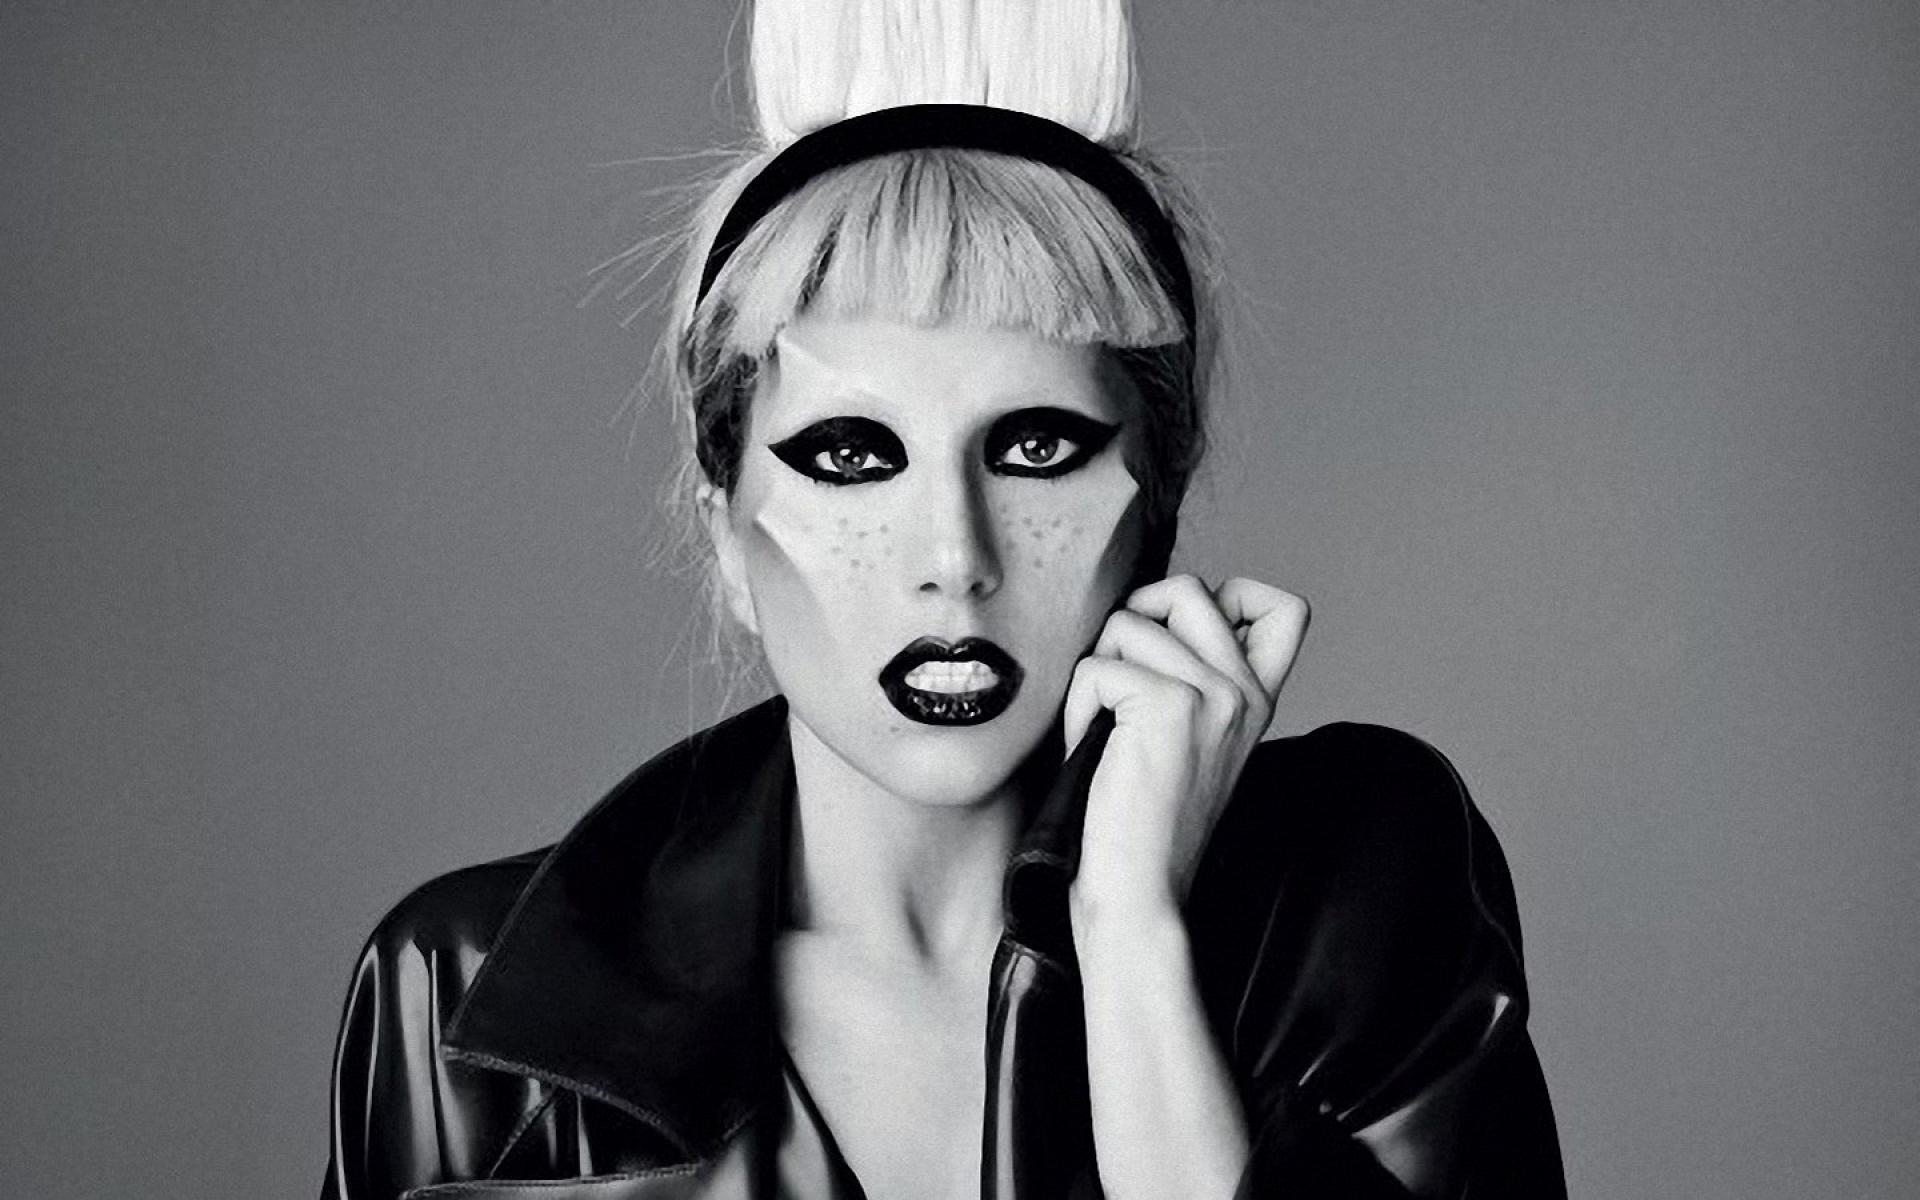 Lady Gaga Will Star in 'American Horror Story: Hotel' - Horror Film Central